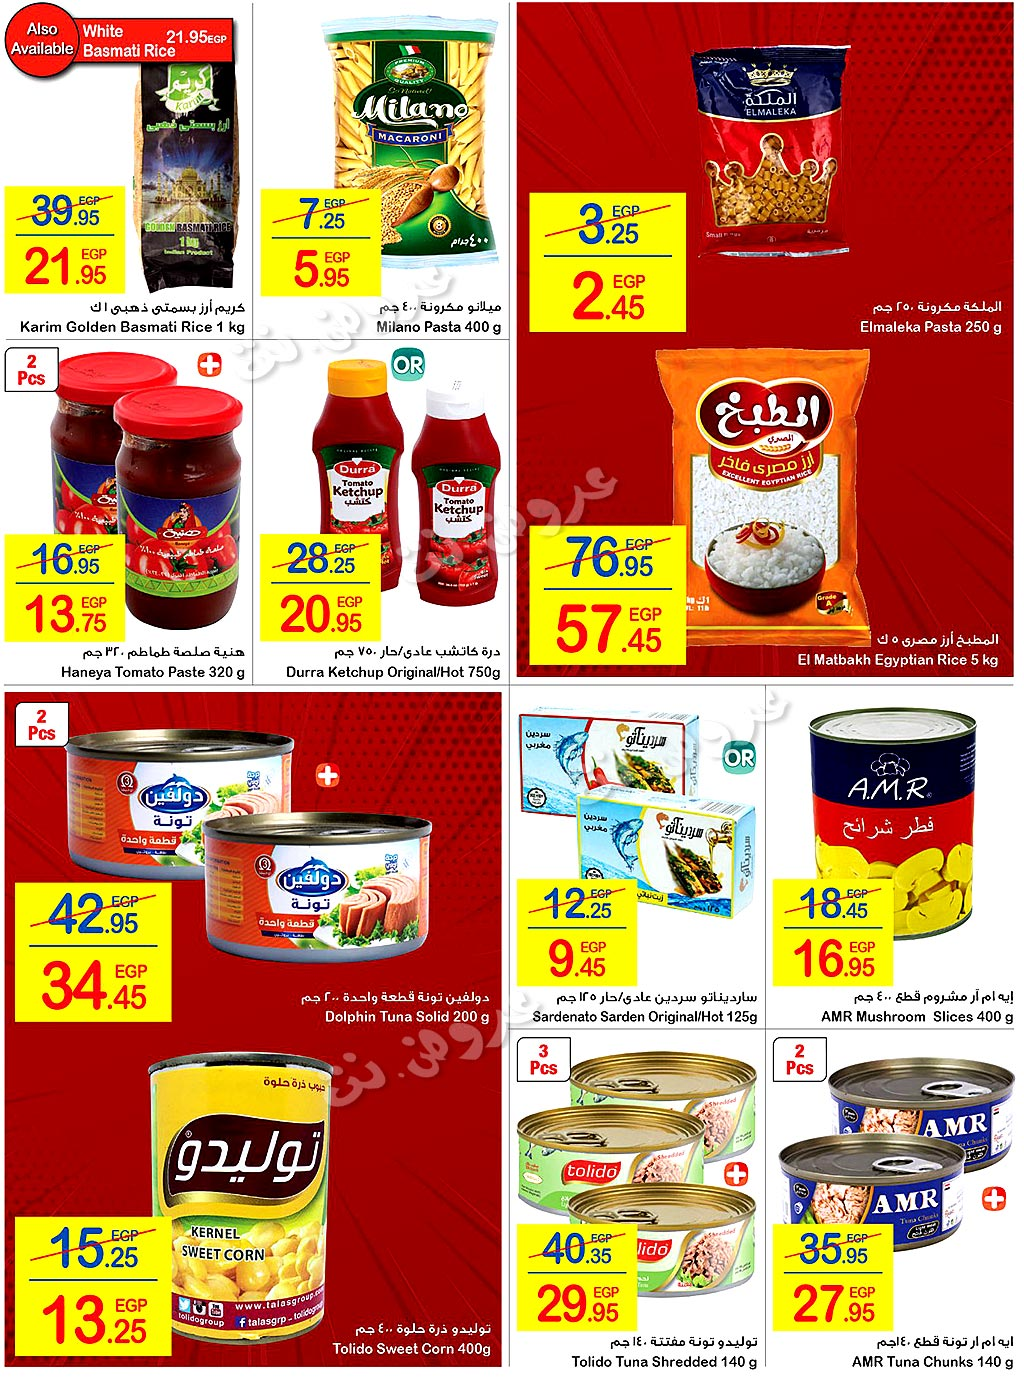 carrefour offers from 14aug to 25aug 2019 page number 2 عروض كارفور من 14 أغسطس حتى 25 أغسطس 2019 صفحة رقم 2